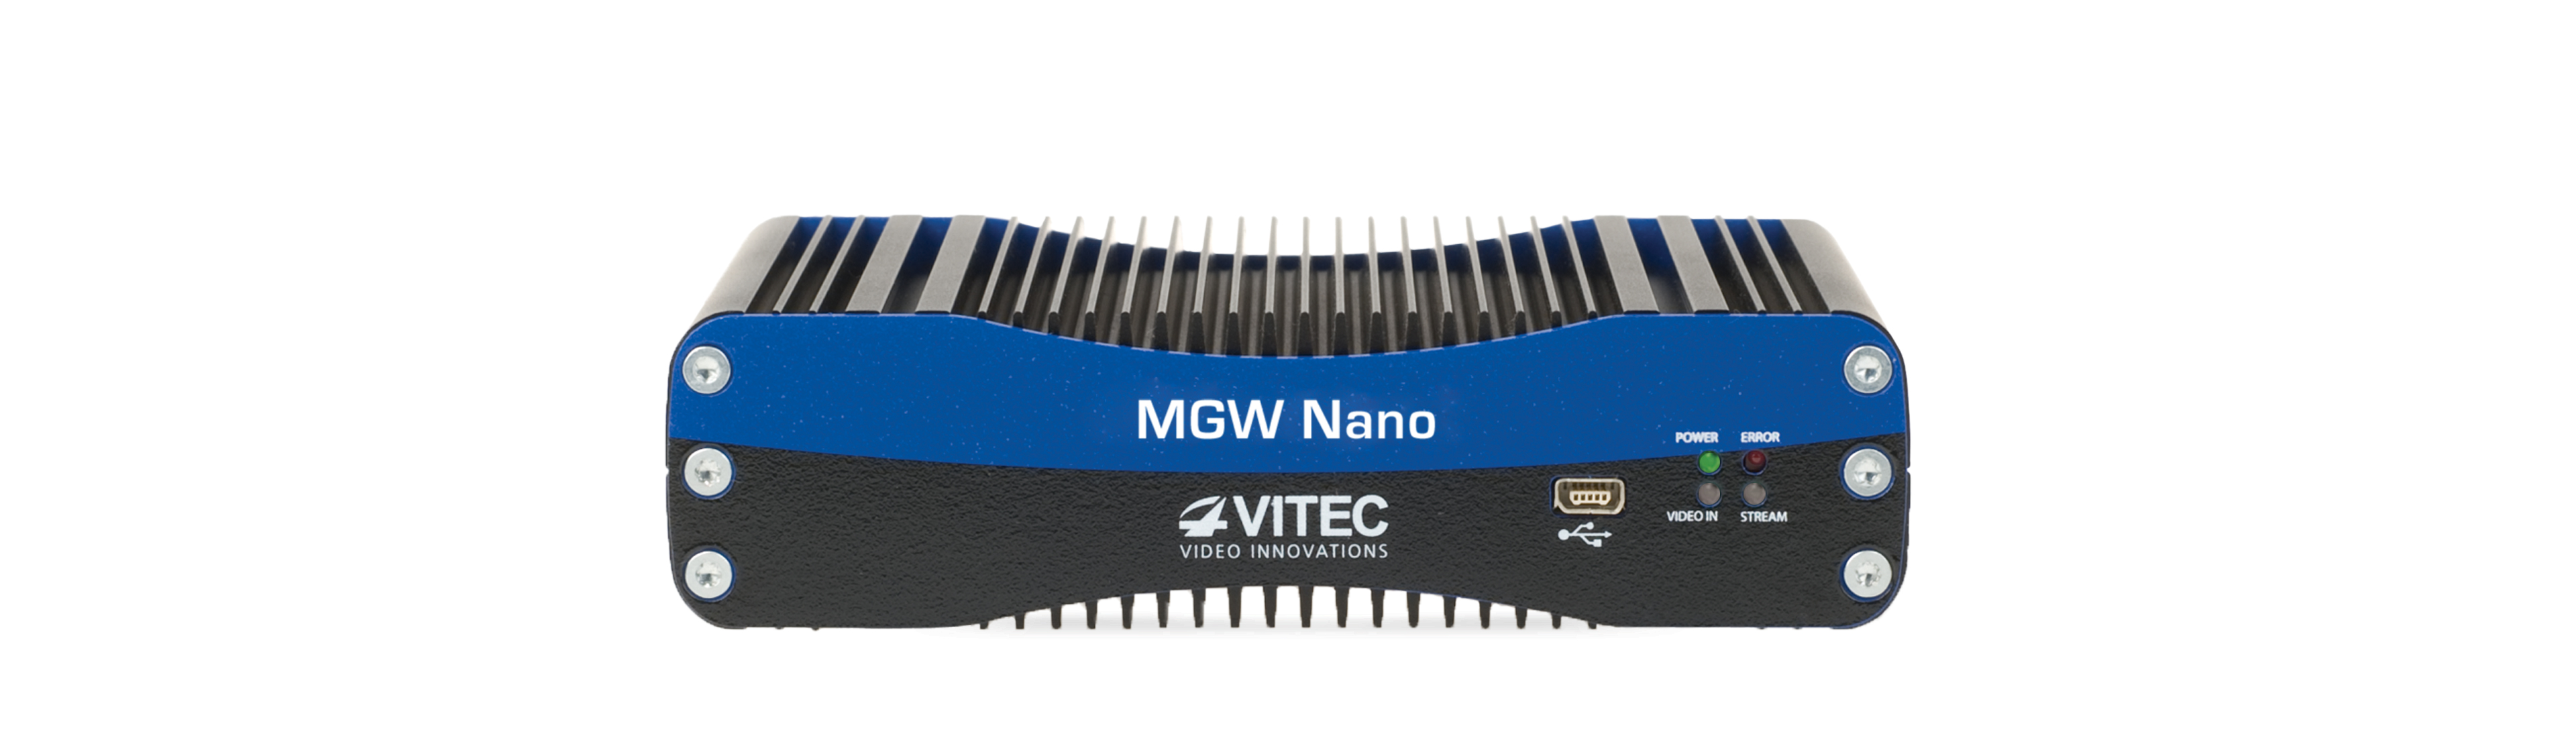 VITEC - MGW Nano - Compact HDMI/SDI H.264 Encoding & Streaming Appliance